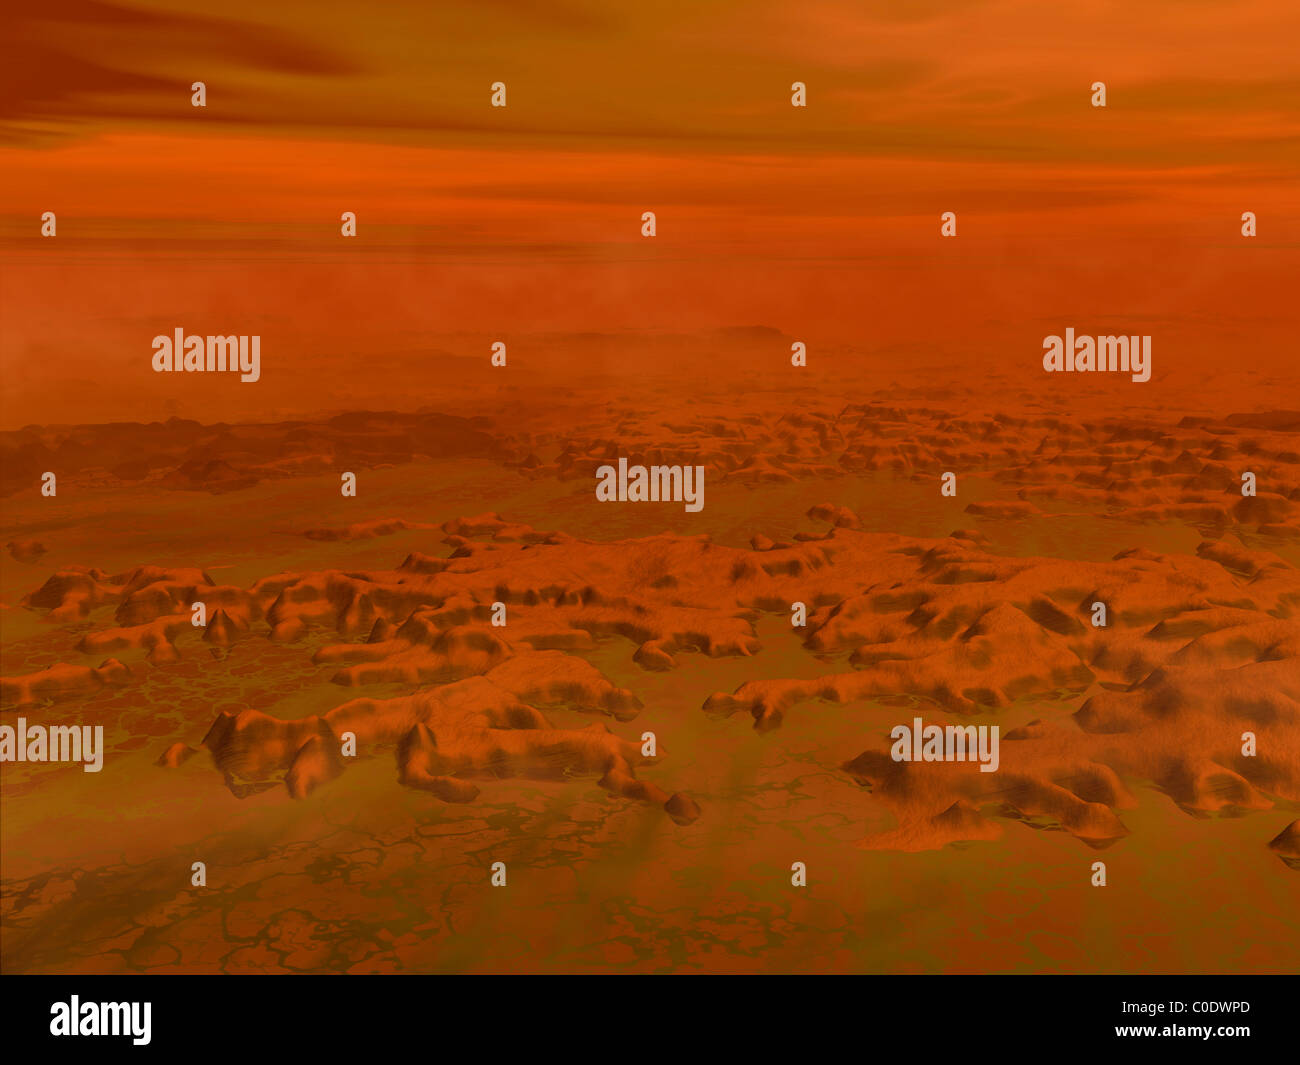 Artist's concept of the surface of Saturn's moon Titan. - Stock Image